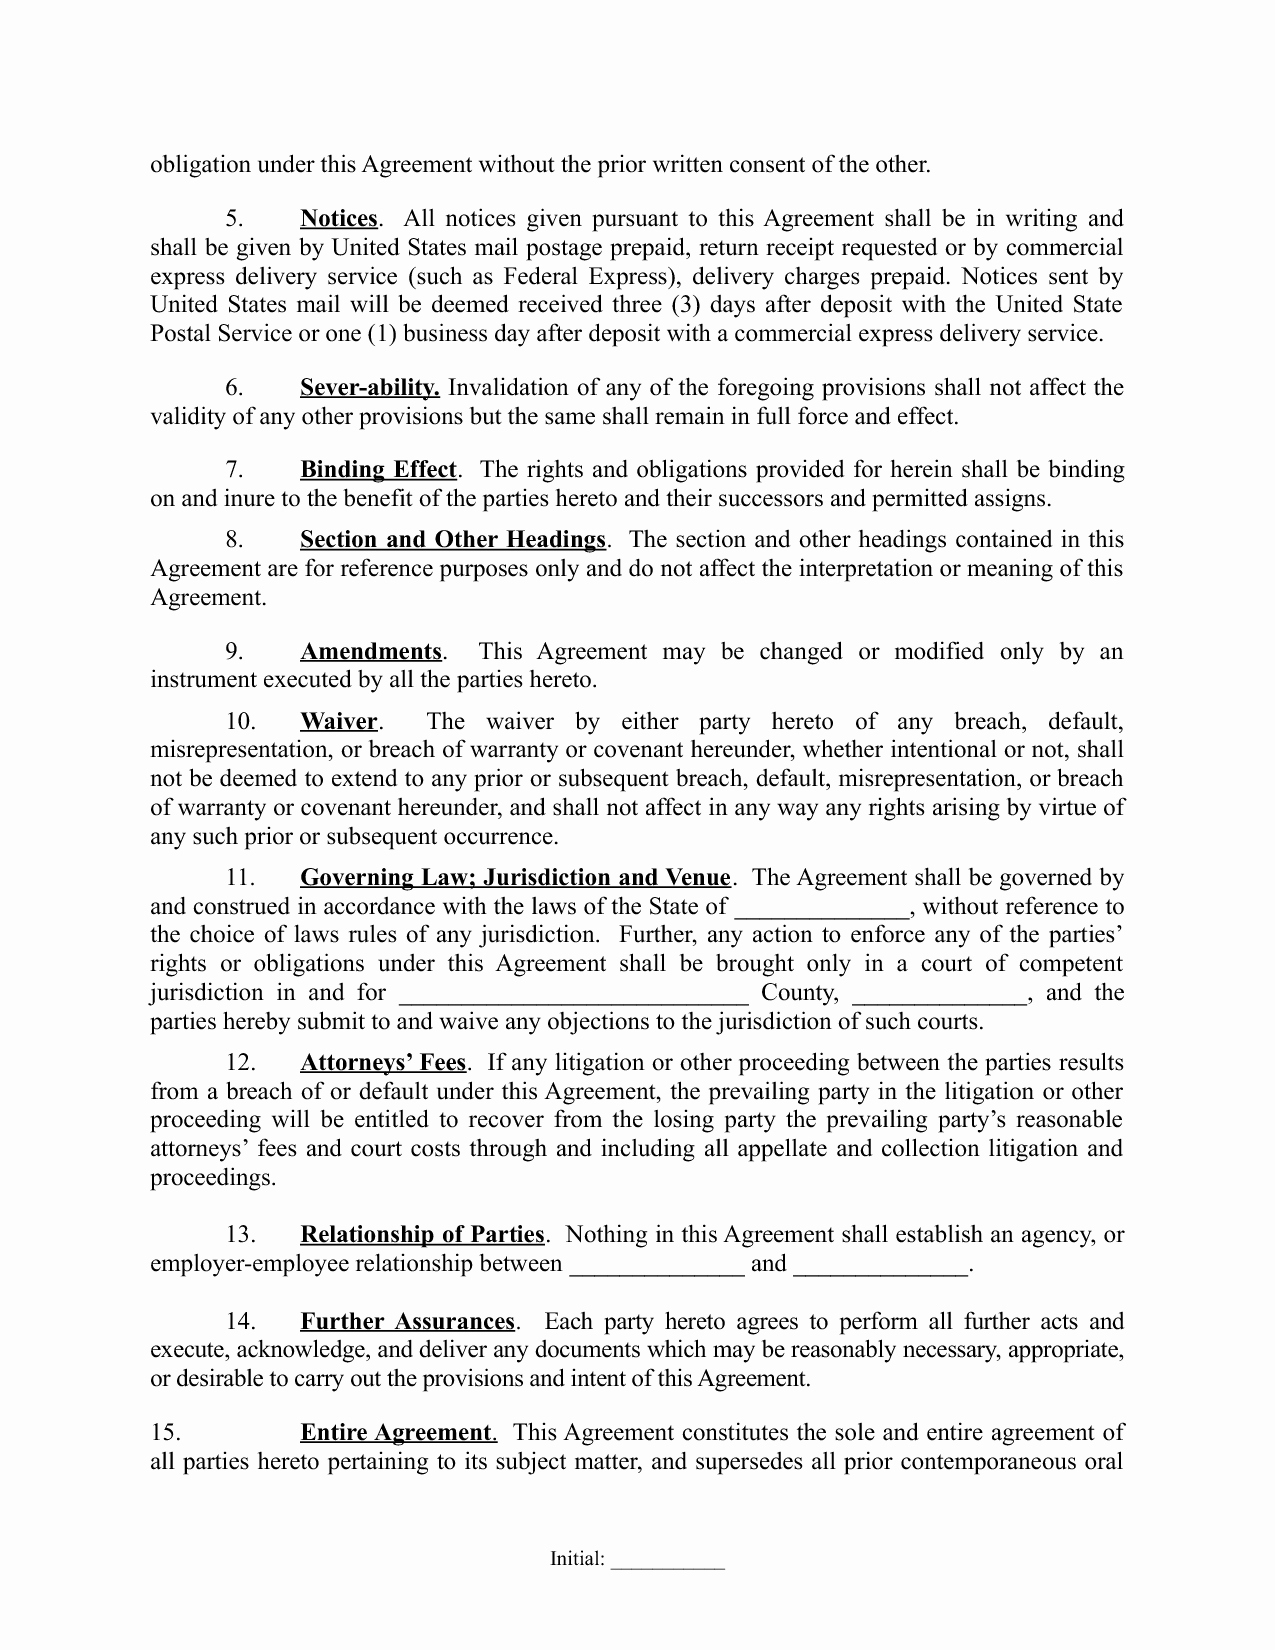 Real Estate Partnership Agreement Template Inspirational Partnership Agreement 1 Real Estate Investing